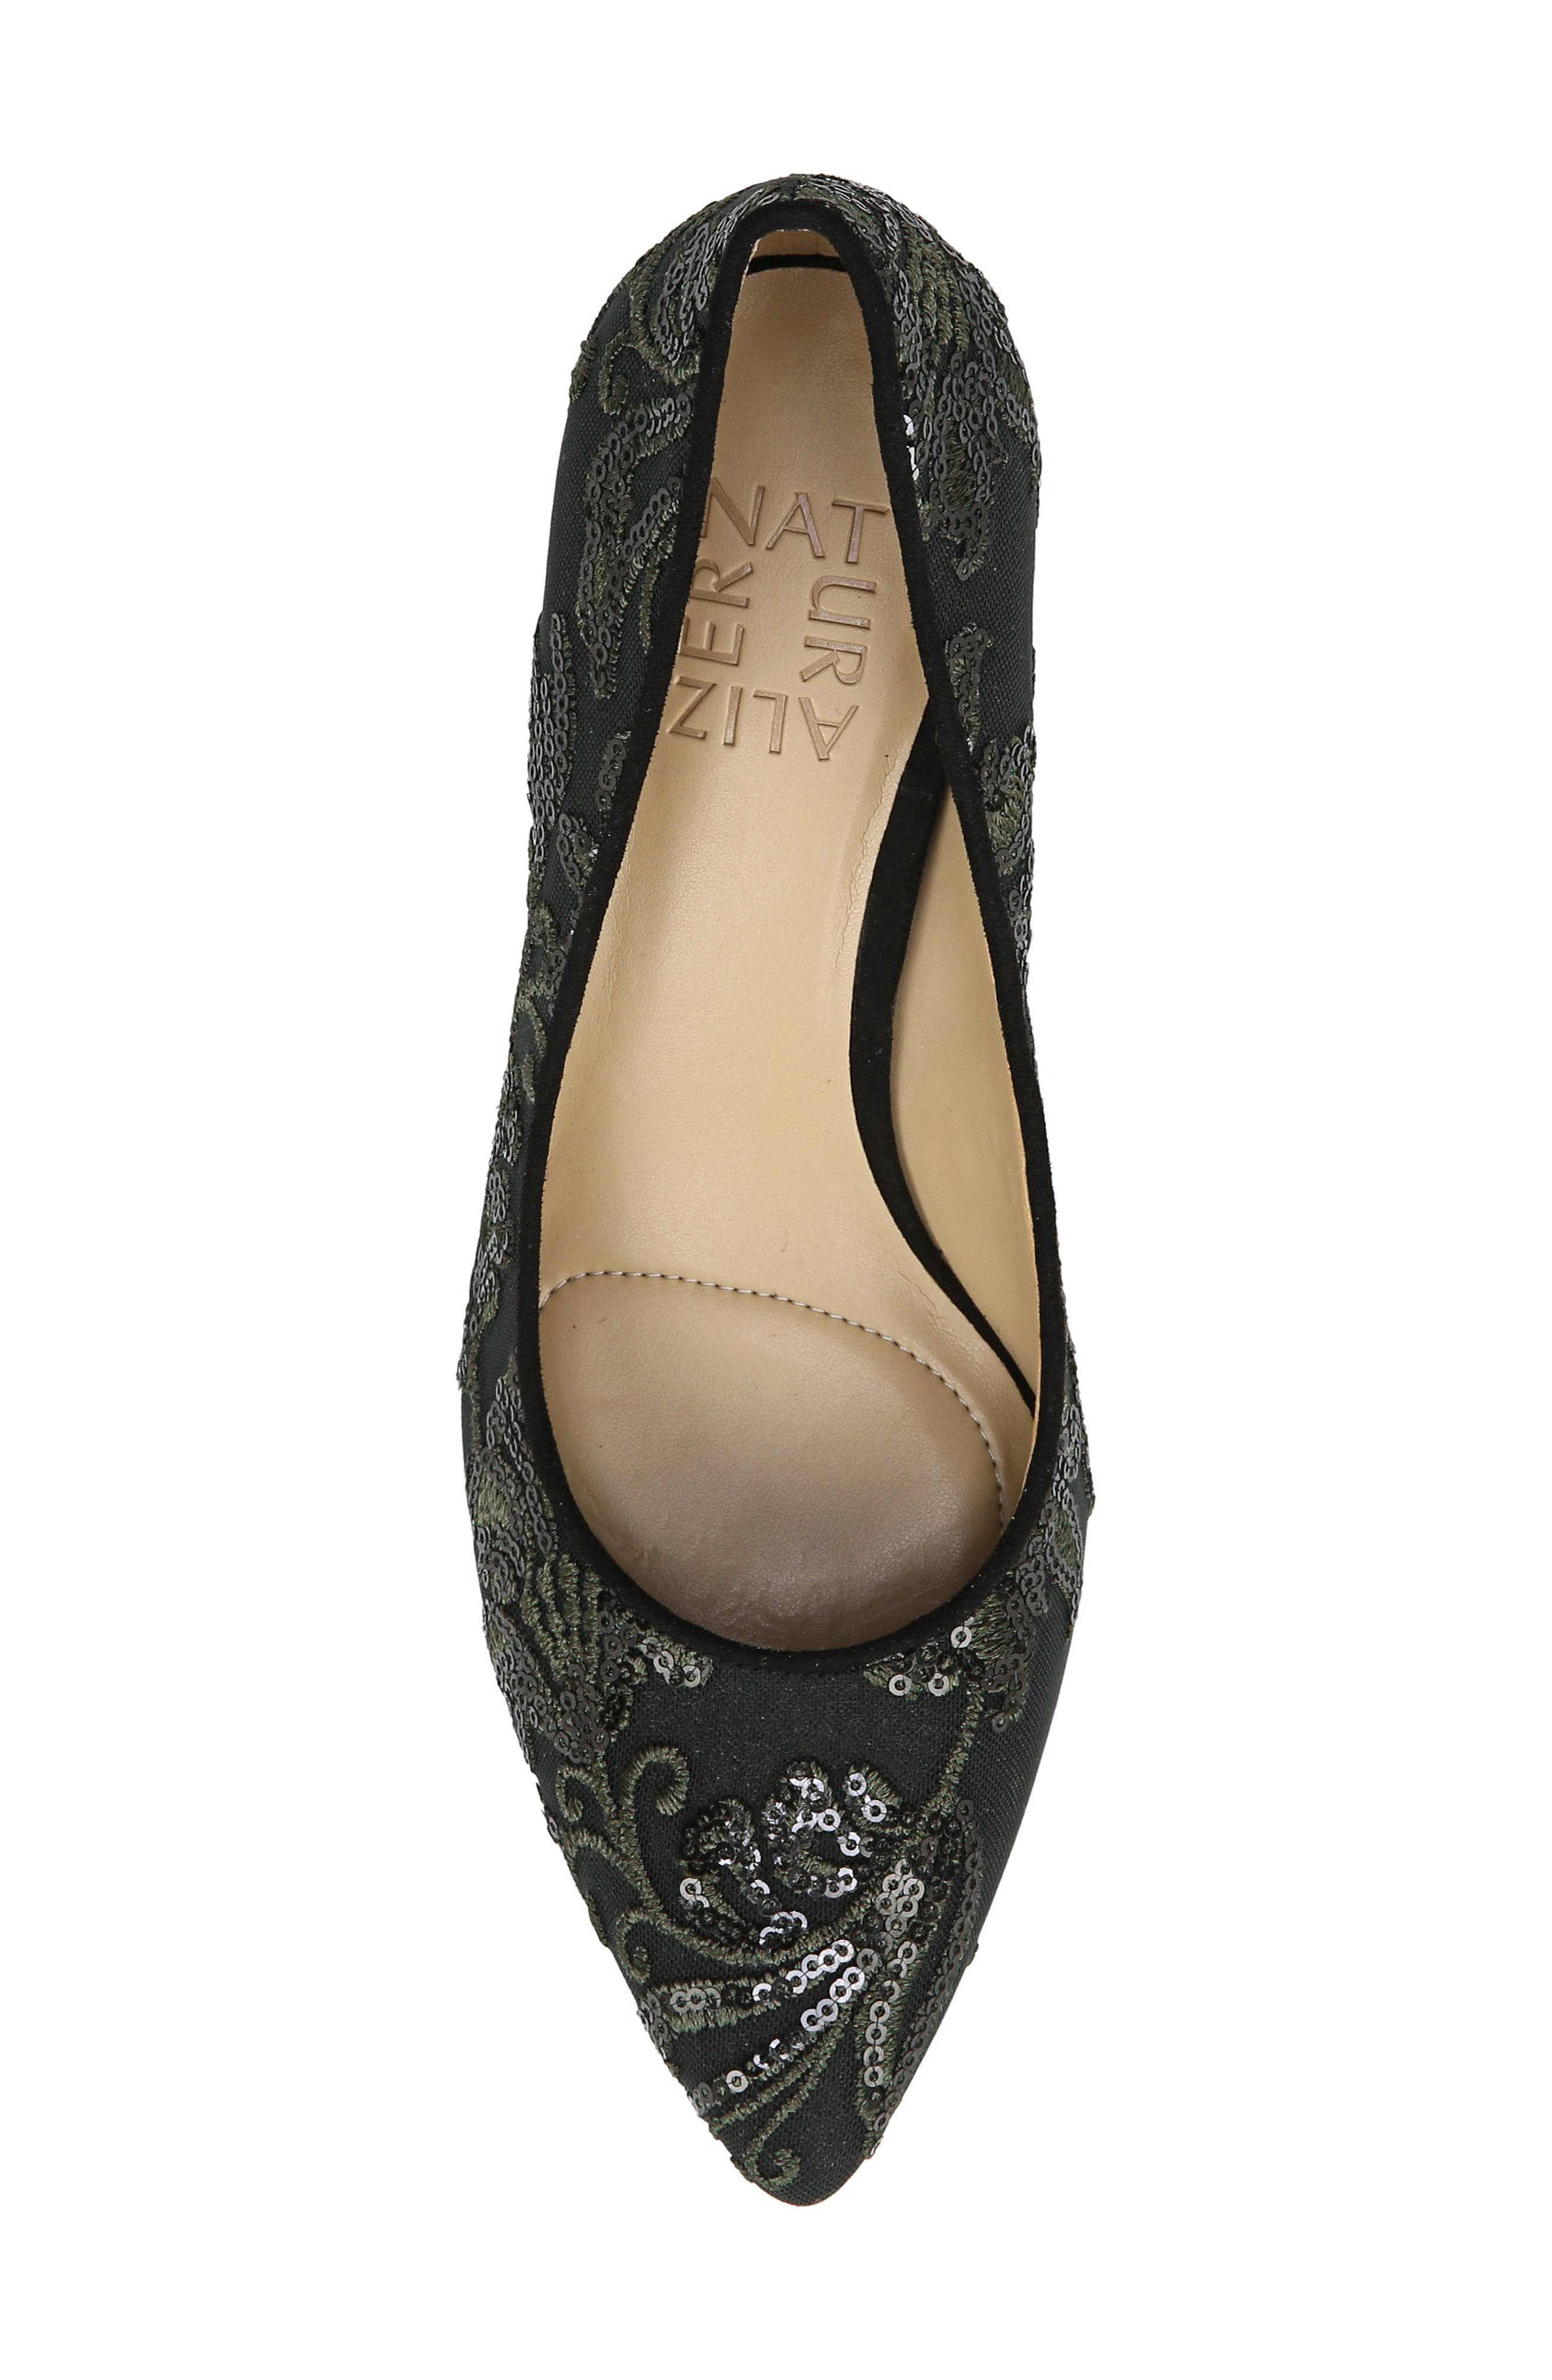 NATURALIZER, Natalie Pointy Toe Pump, Alternate thumbnail 5, color, FERN GREEN EMBROIDERED